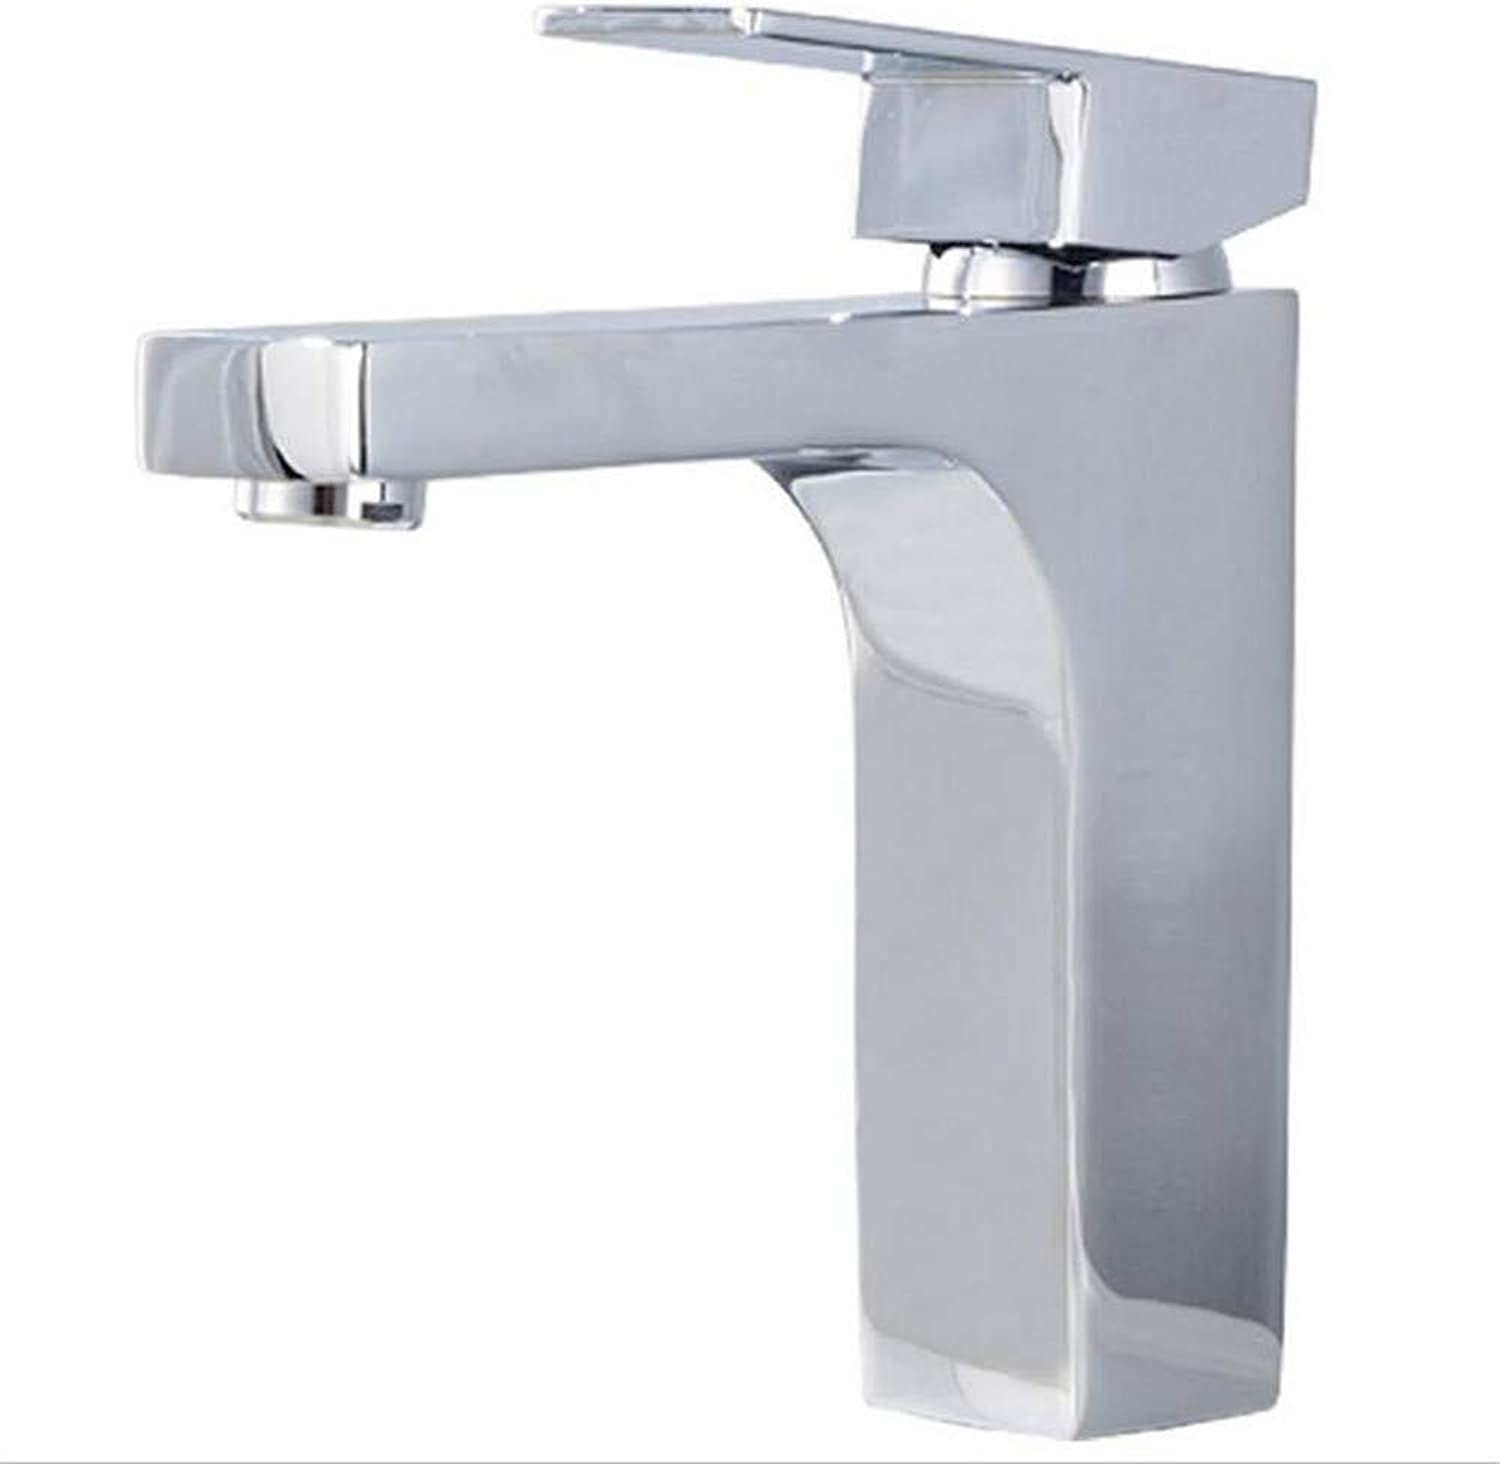 Basin Mixer Tap Copper Hot and Cold Basin Faucet Bathroom Toilet Square Faucet Sink Basin Mixing Water Valve